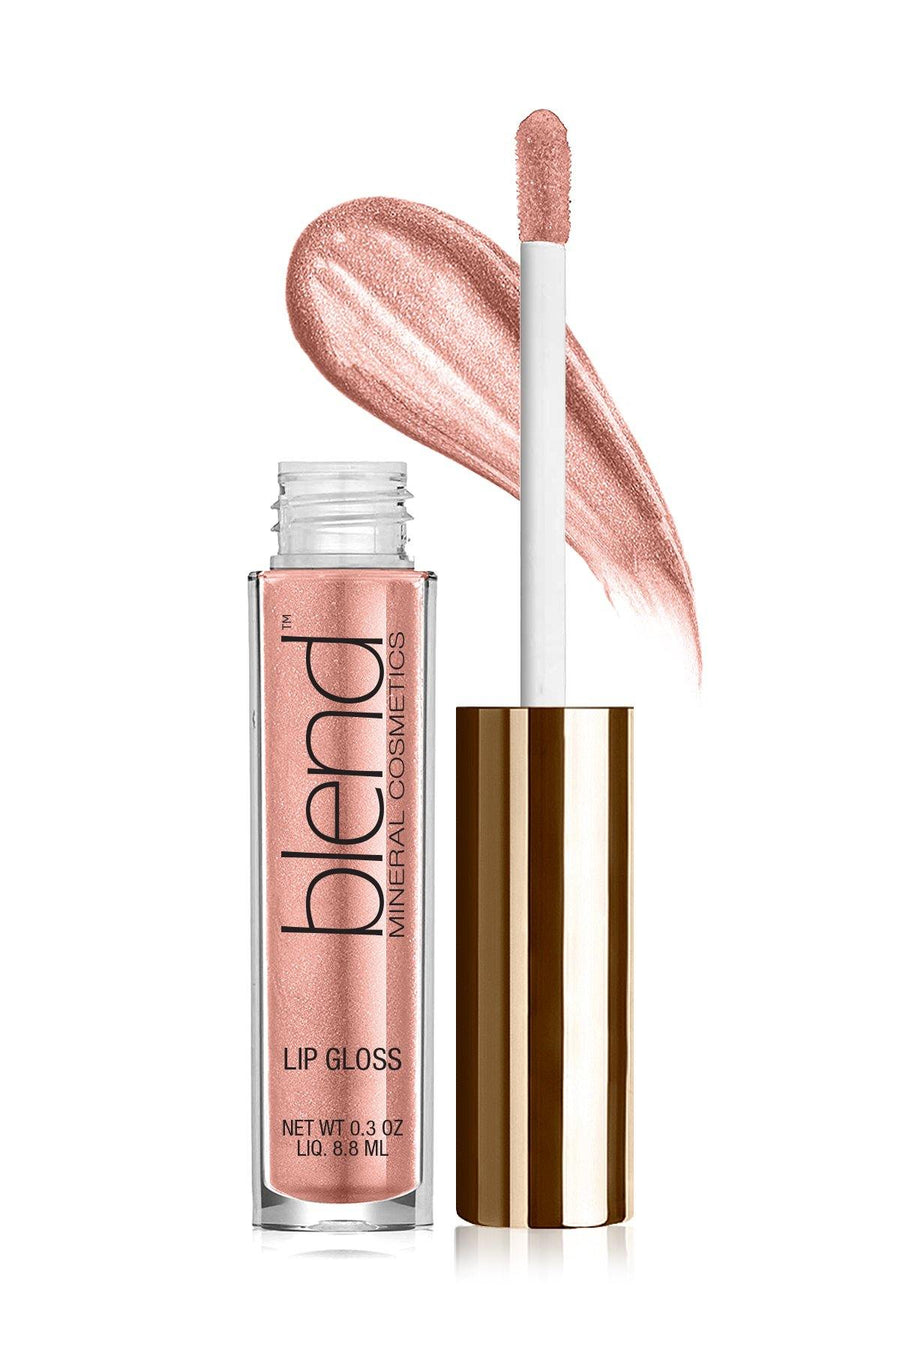 Lip Gloss#G12 - Rosy Future - Blend Mineral Cosmetics